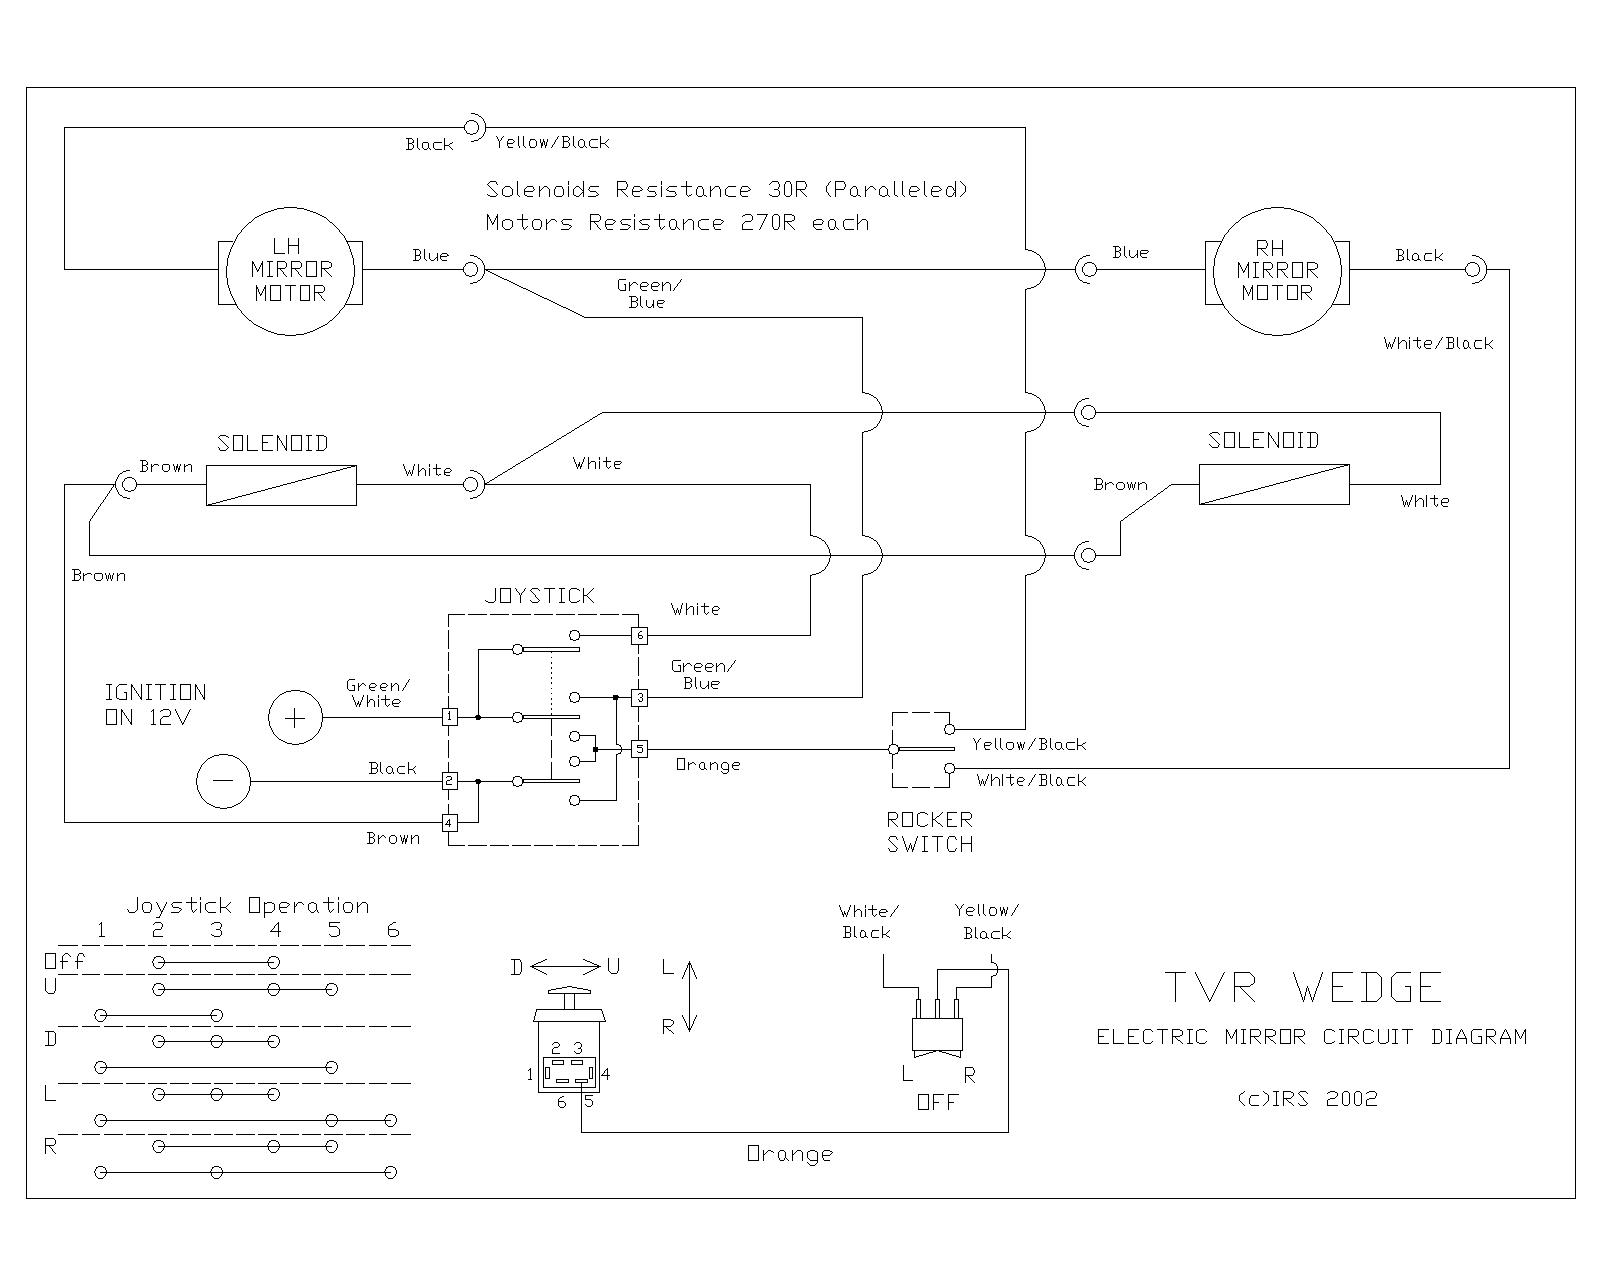 Tvr 390se P7 Joystick Wiring Diagram The Circuit Also Shows Which Wire Should Go To Terminal On Wires Often Get Pulled Off When Rummaging Around Behind Centre Console